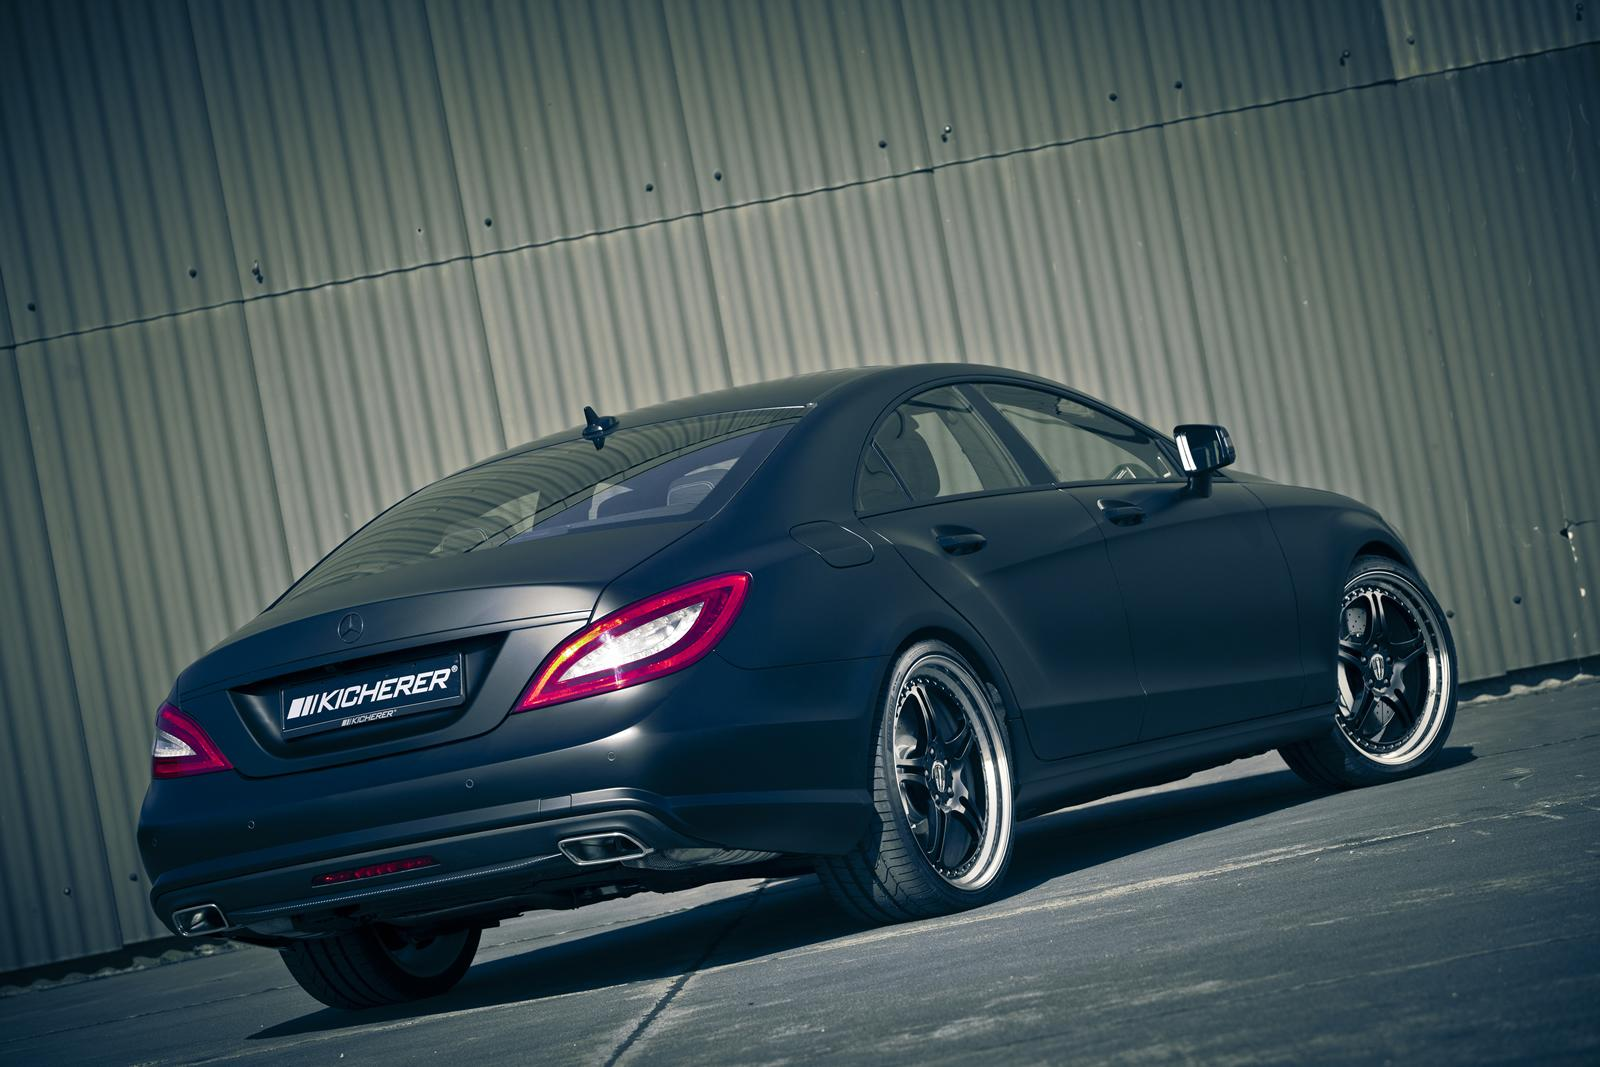 mercedes cls edition black by kicherer packs 3 Kicherer captures market with black Mercedes CLS model